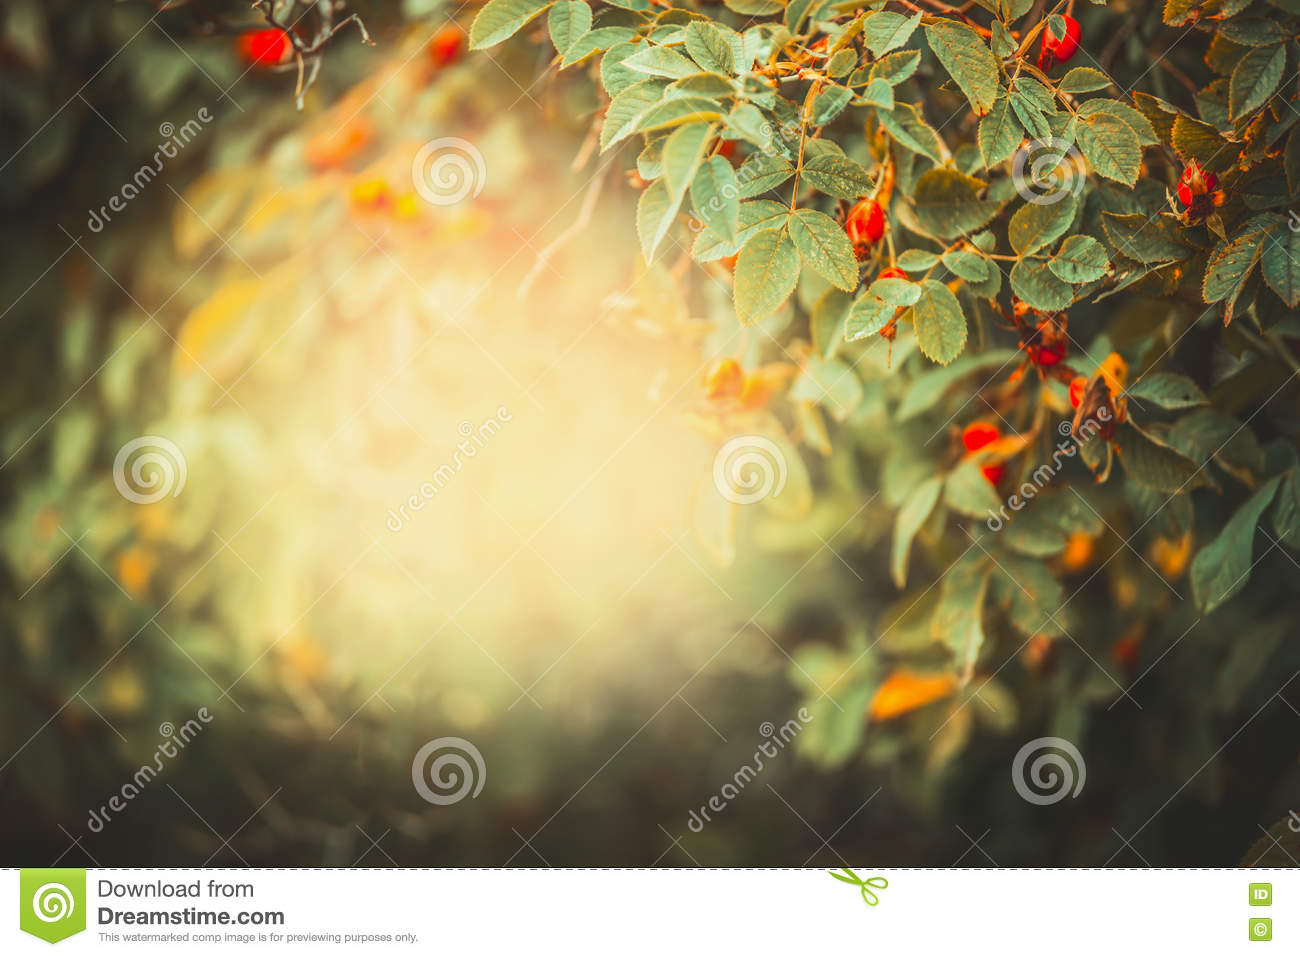 Beautiful autumn nature background with frame of dog roses with red fruits and berries in garden or park at sunset light